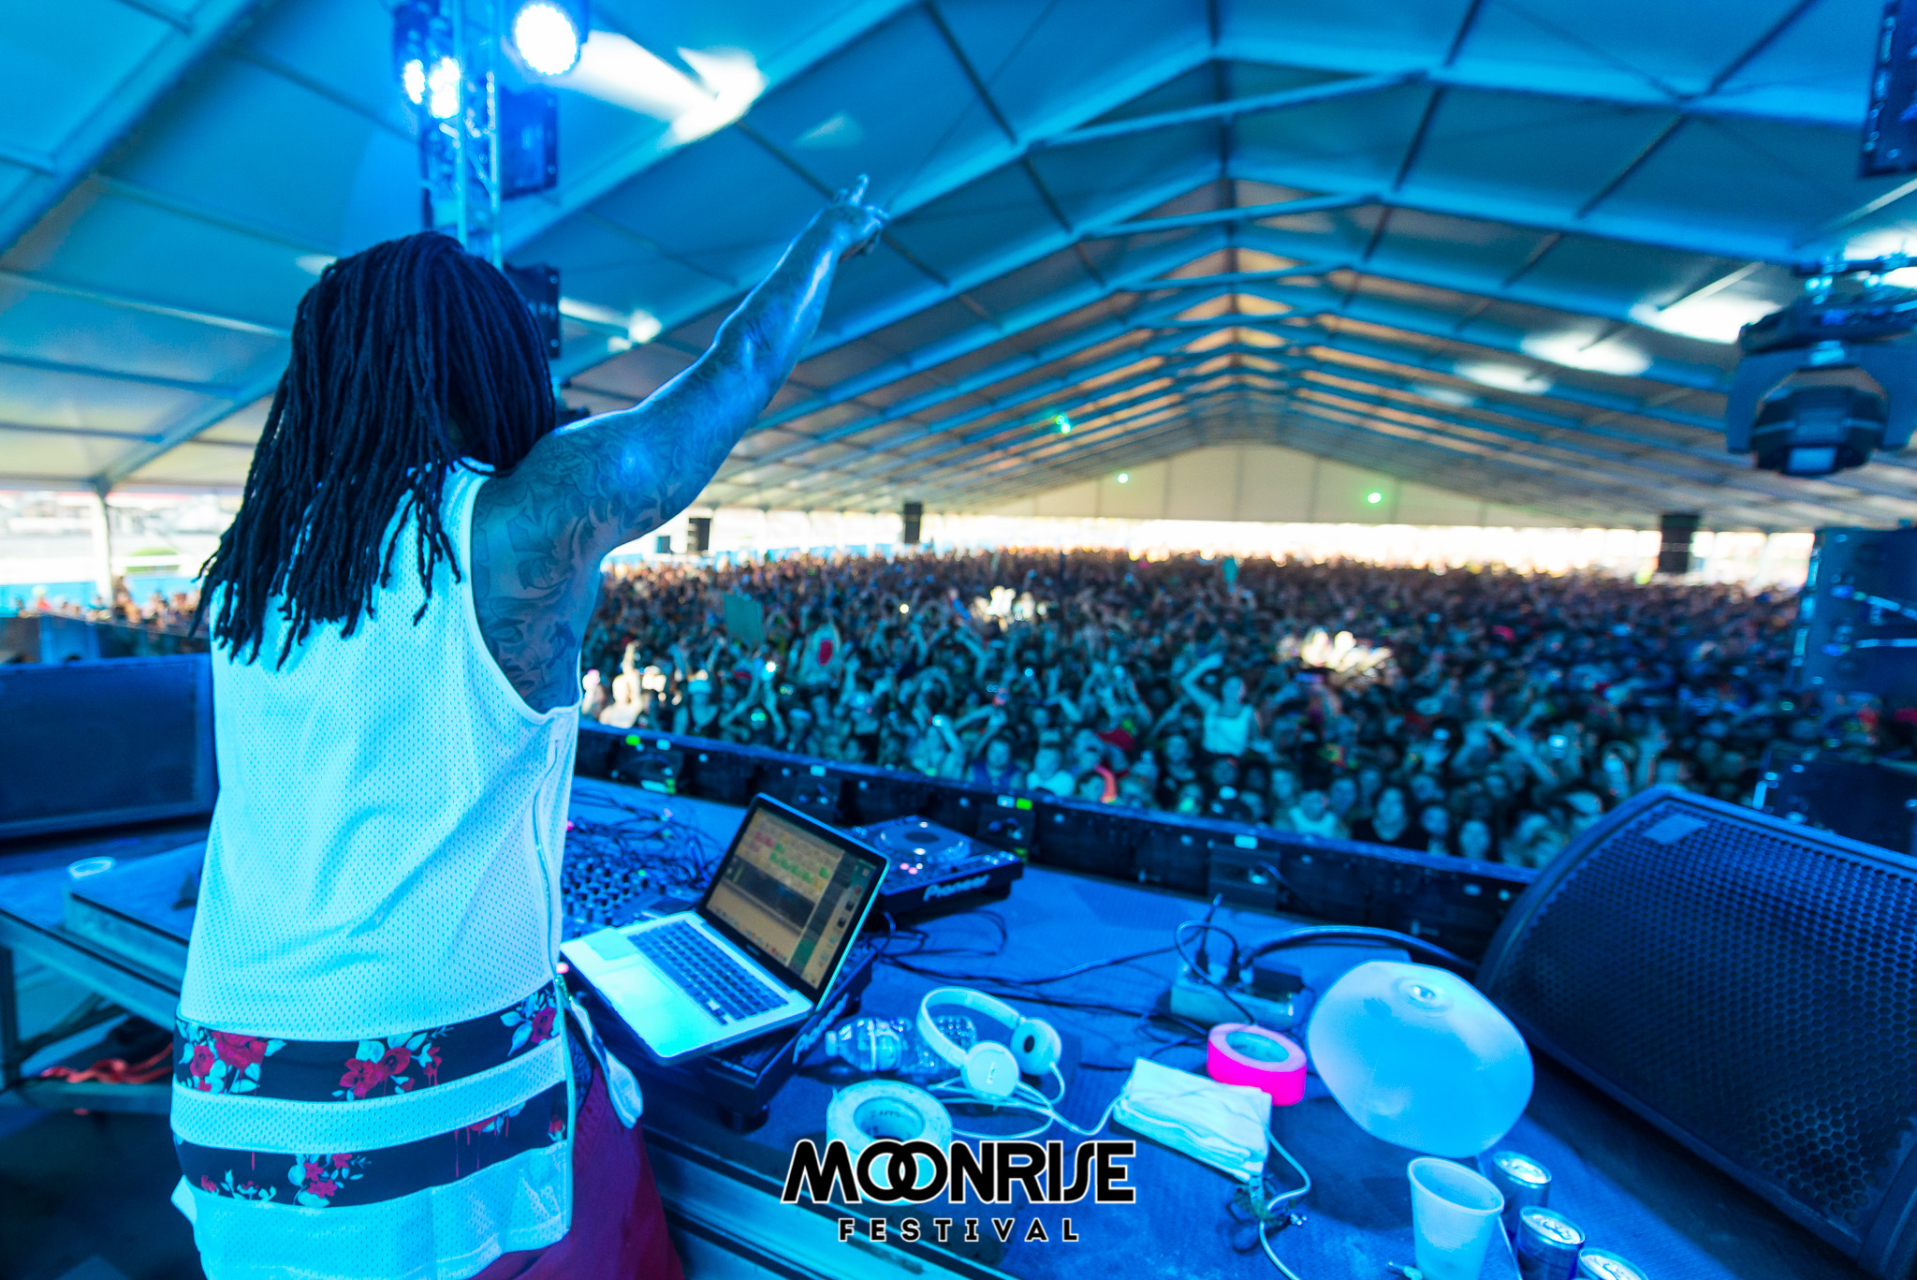 Moonrise_day2-8